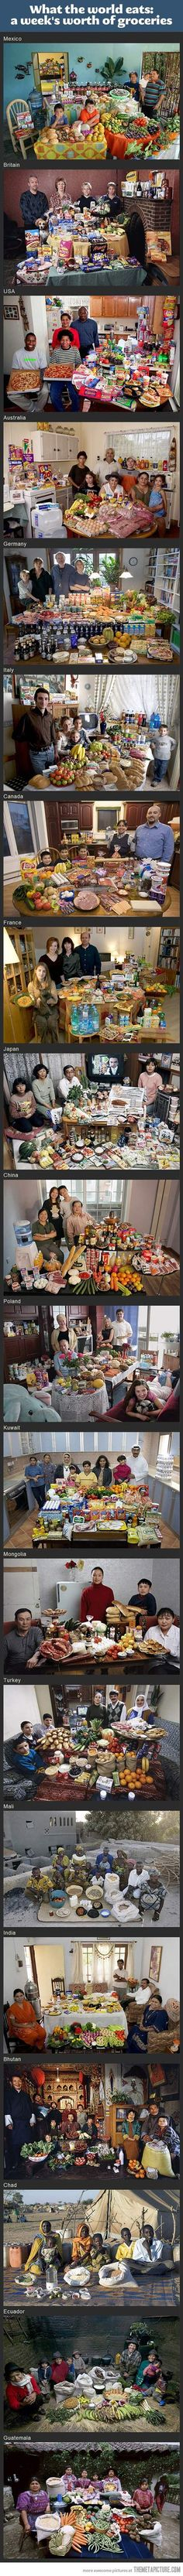 A week's worth of groceries around the world   sociology, food, socialization, health, poverty, culture, obesity, hunger